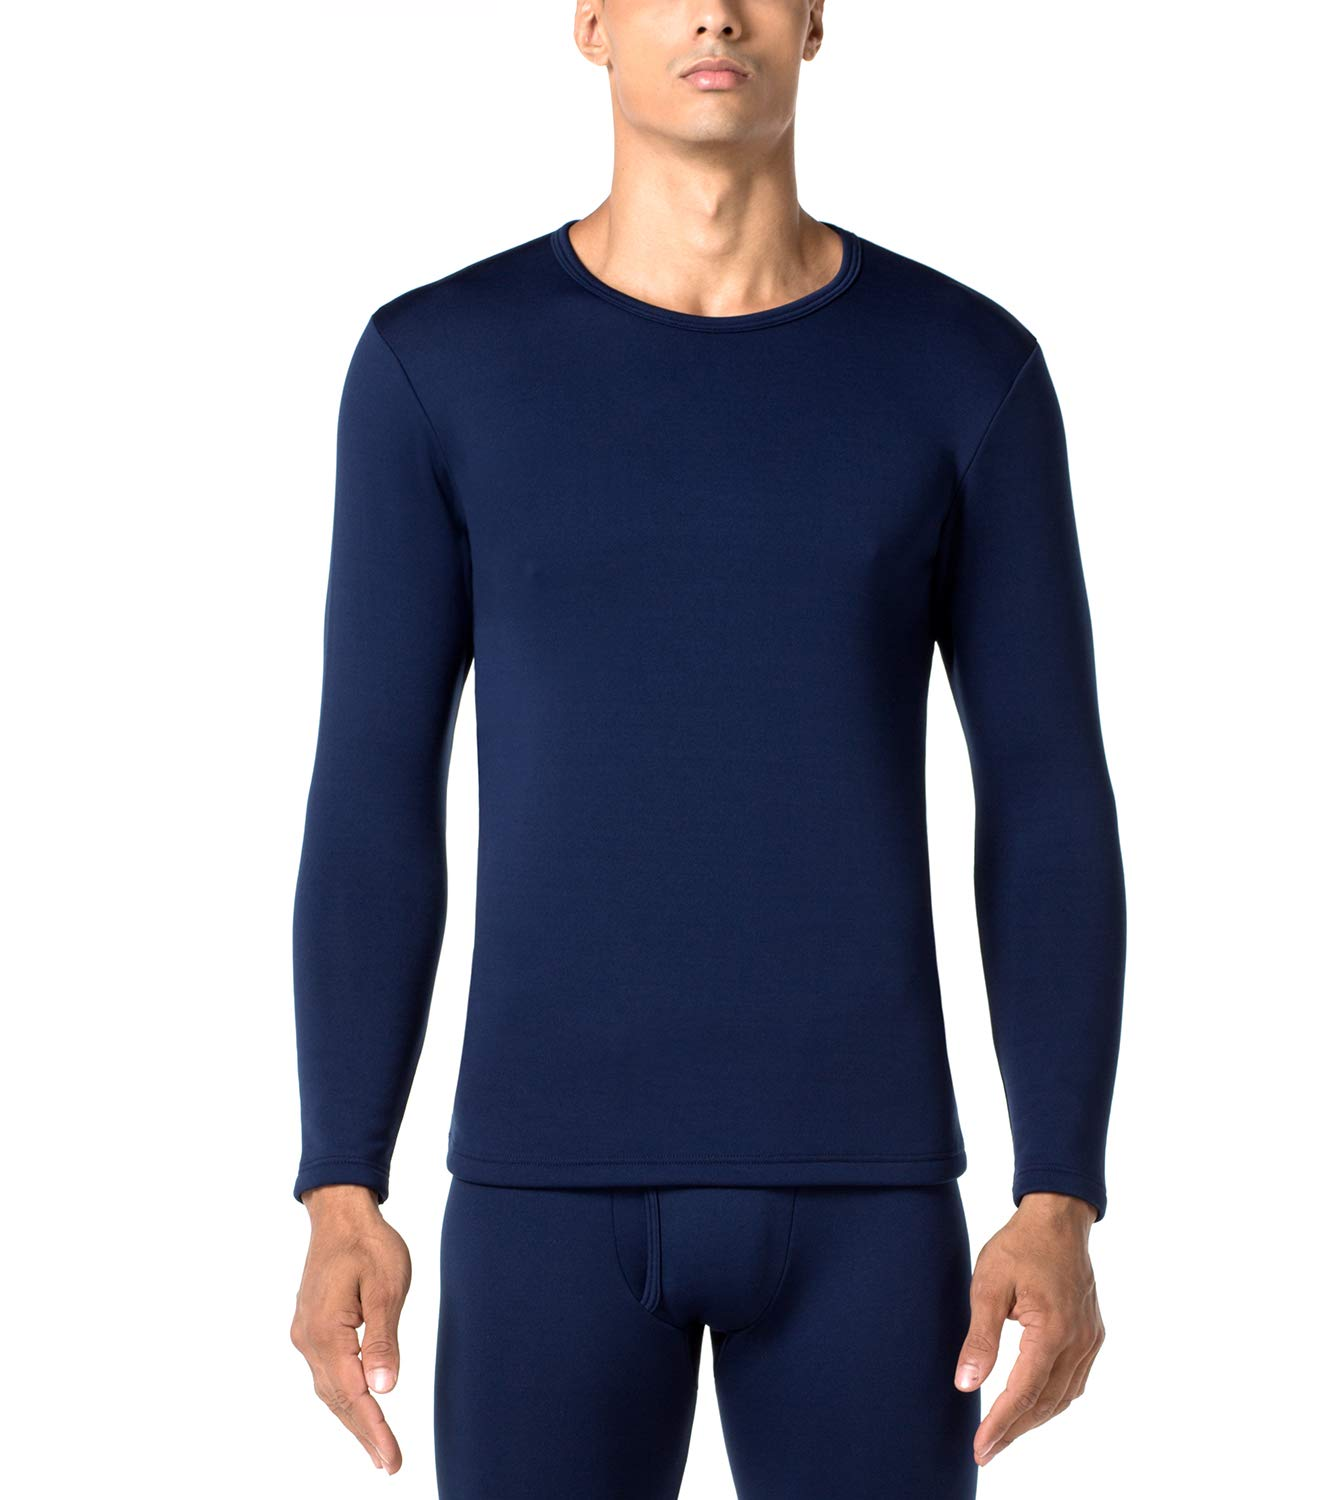 LAPASA Men's Heavyweight Thermal Underwear Top Fleece Lined Base Layer Long Sleeve Shirt M26 (1 Top/Navy, L Chest 41''-43'' Sleeve 23.6'') by LAPASA